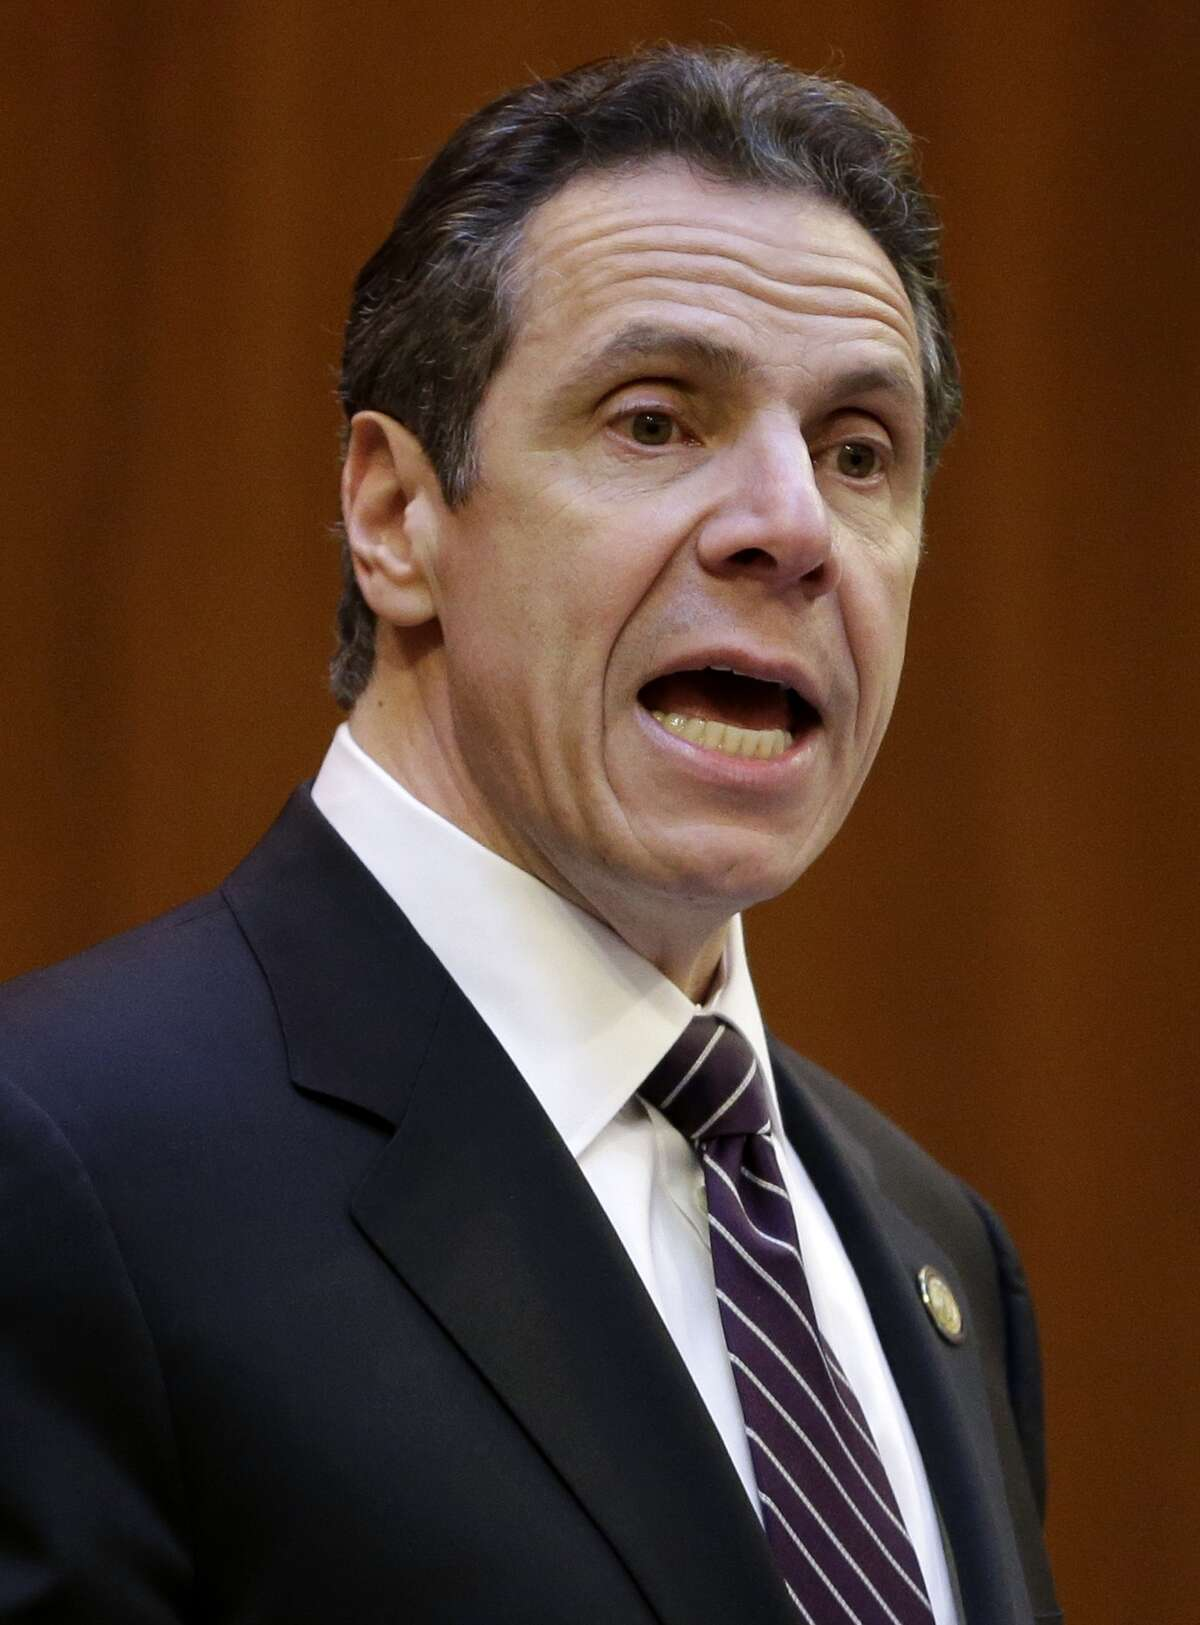 New York Governor Andrew Cuomo speaks at New York University in New York, Monday, Feb. 2, 2015. Cuomo said he won't sign a budget for the state this year that doesn't include an ethics plan for legislators. (AP Photo/Seth Wenig) ORG XMIT: NYSW112